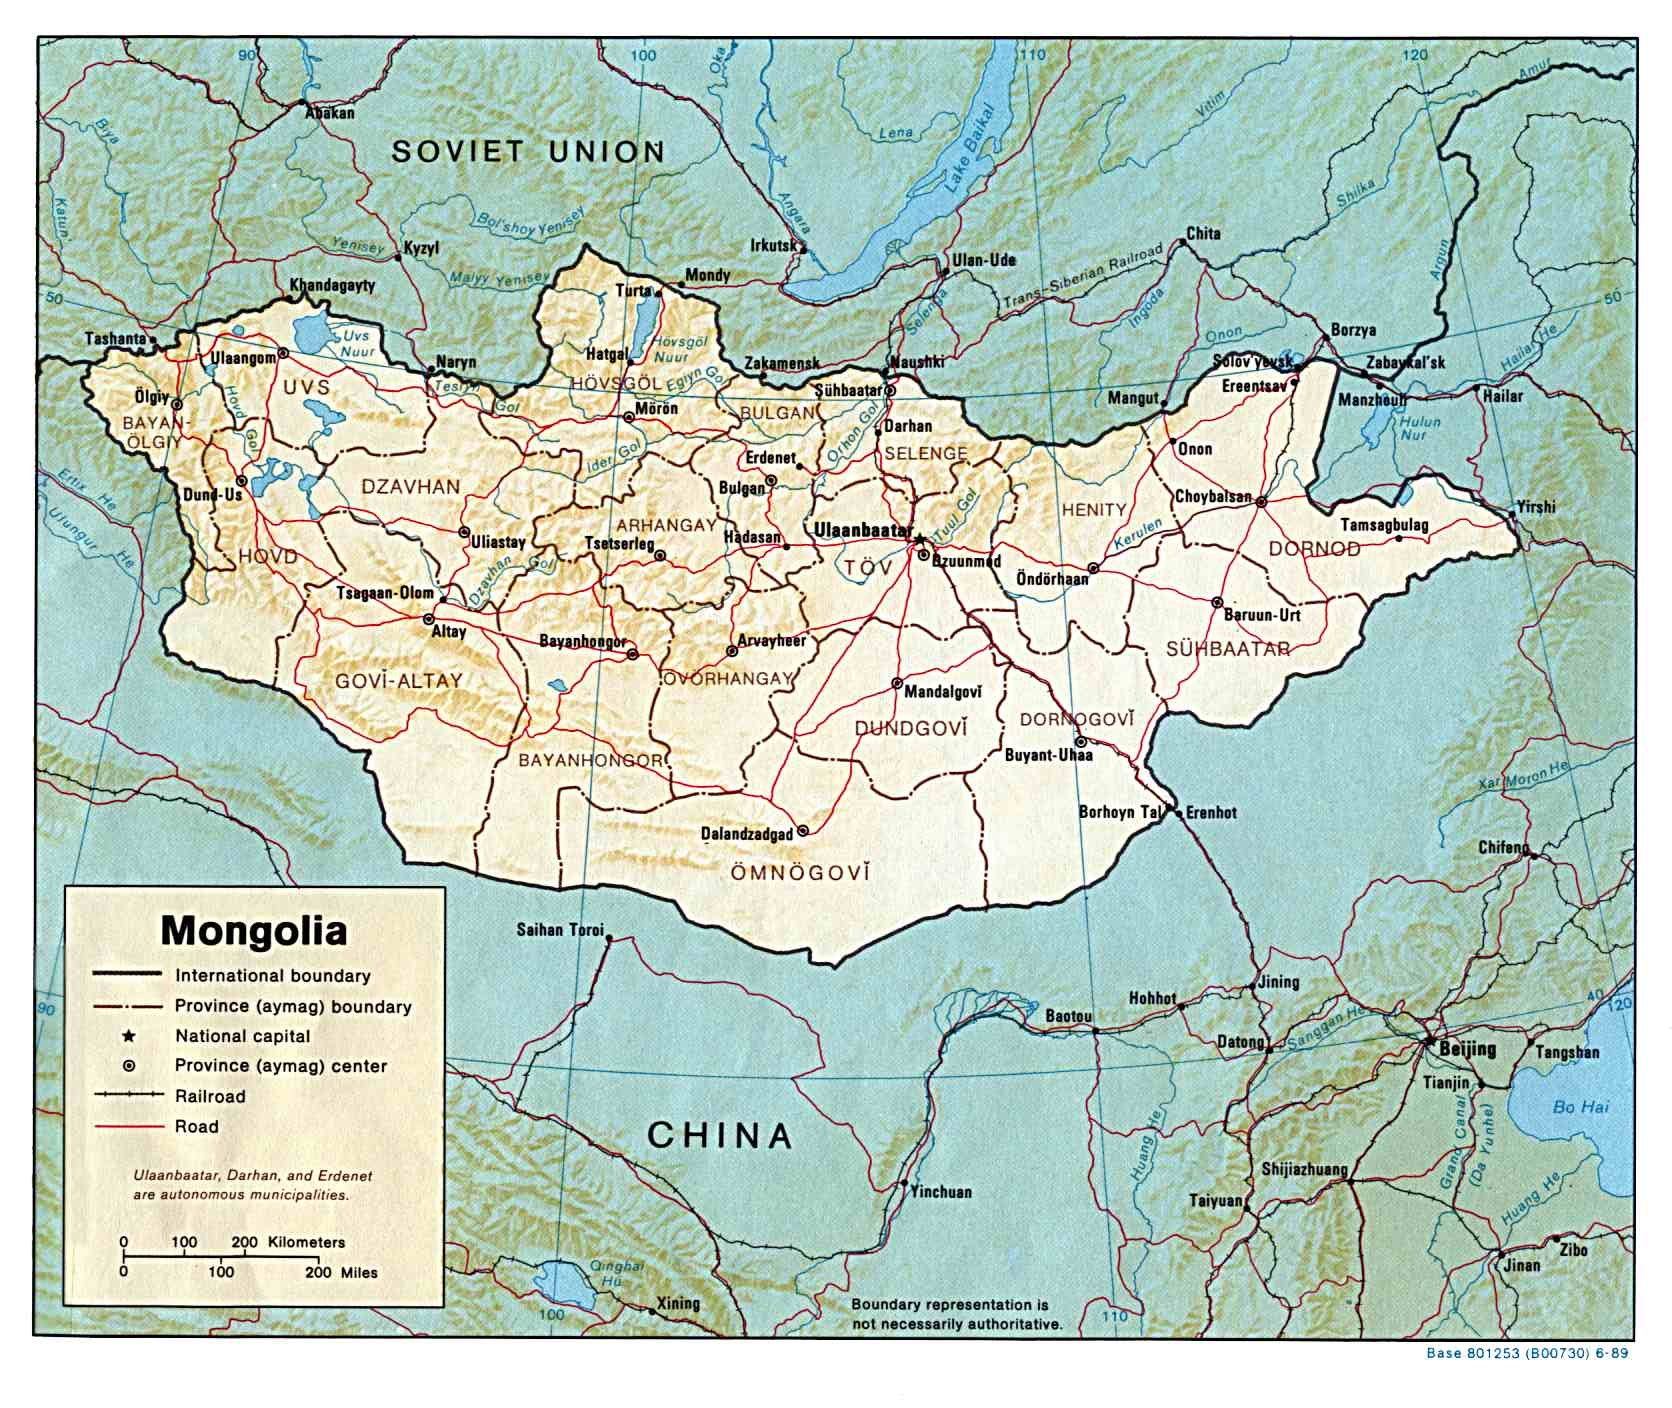 Mongolia Maps PerryCastañeda Map Collection UT Library Online - Us government map of mongolia 1 500000